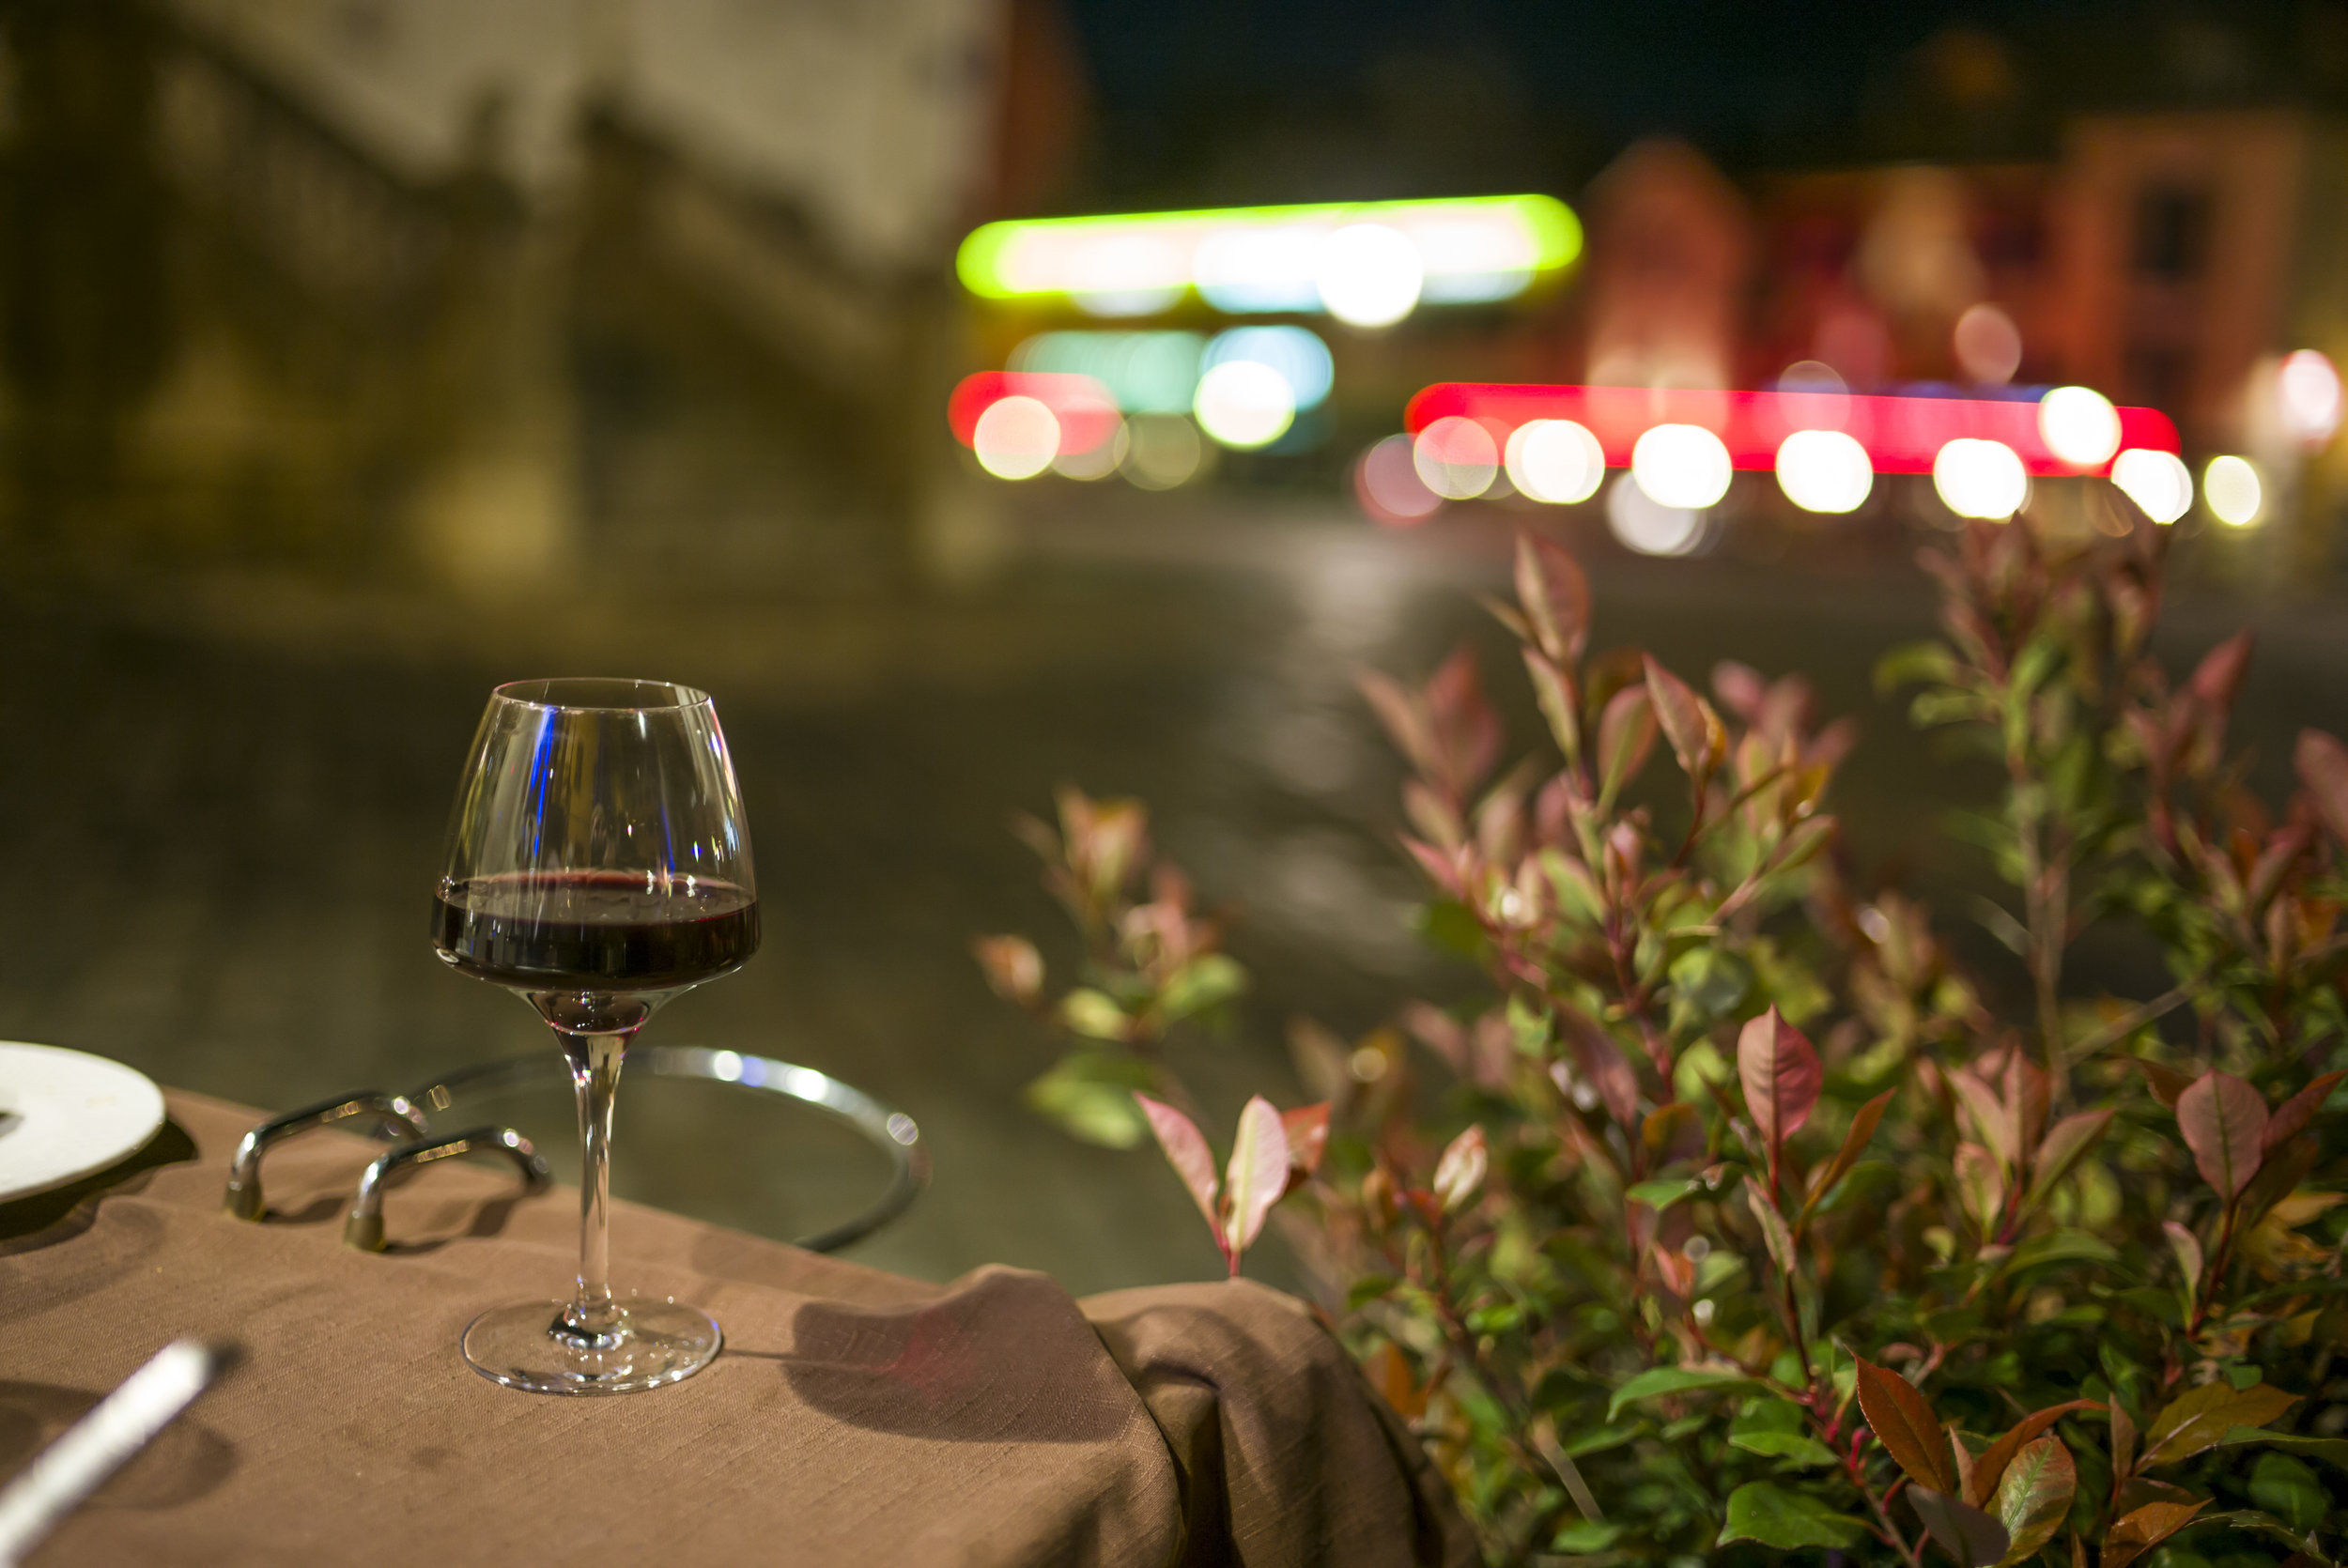 Sipping a nice red wine at Auberge de Savoie at night